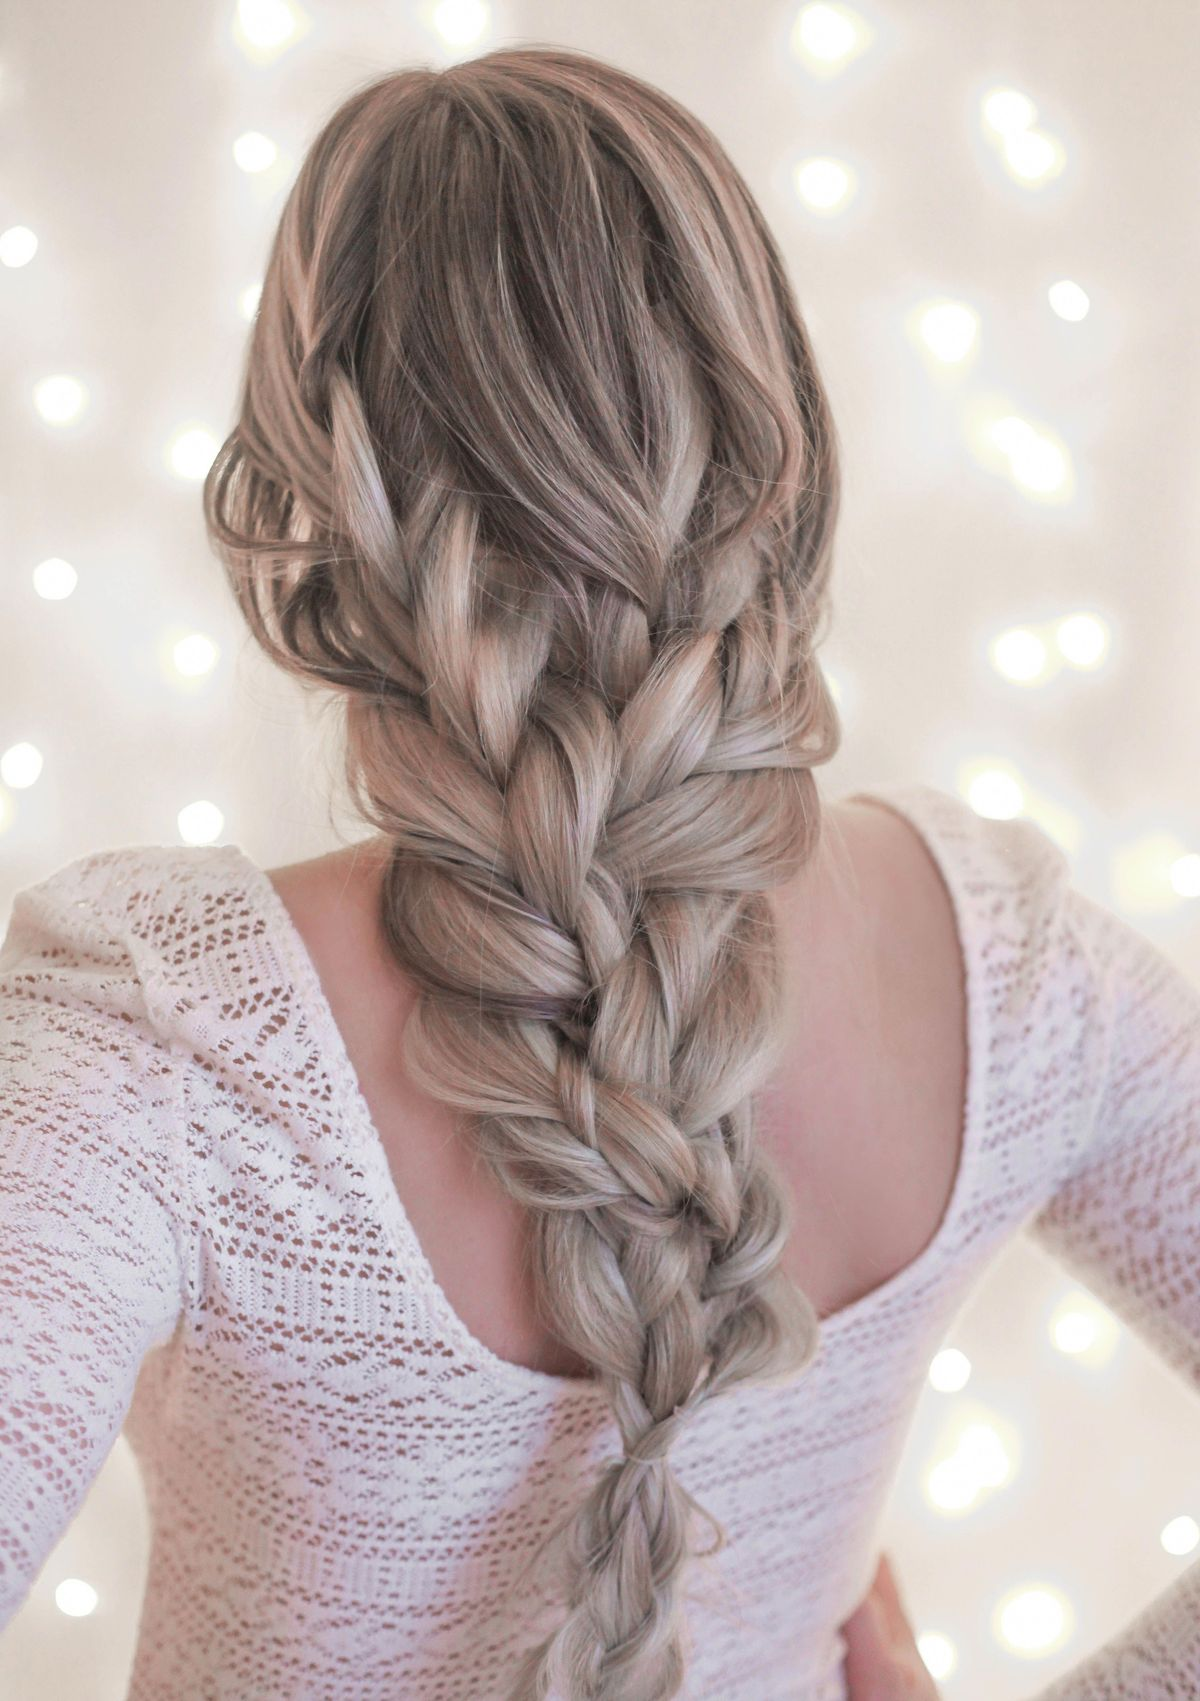 "This simple style takes the standard braid look to something that will stand out. With a few easy-to-master steps and a couple of hair pins add a little something special, so you'll feel polished w… <a class=""pintag"" href=""/explore/Braidedhairstyles/"" title=""#Braidedhairstyles explore Pinterest"">#Braidedhairstyles</a><p><a href=""http://www.homeinteriordesign.org/2018/02/short-guide-to-interior-decoration.html"">Short guide to interior decoration</a></p>"